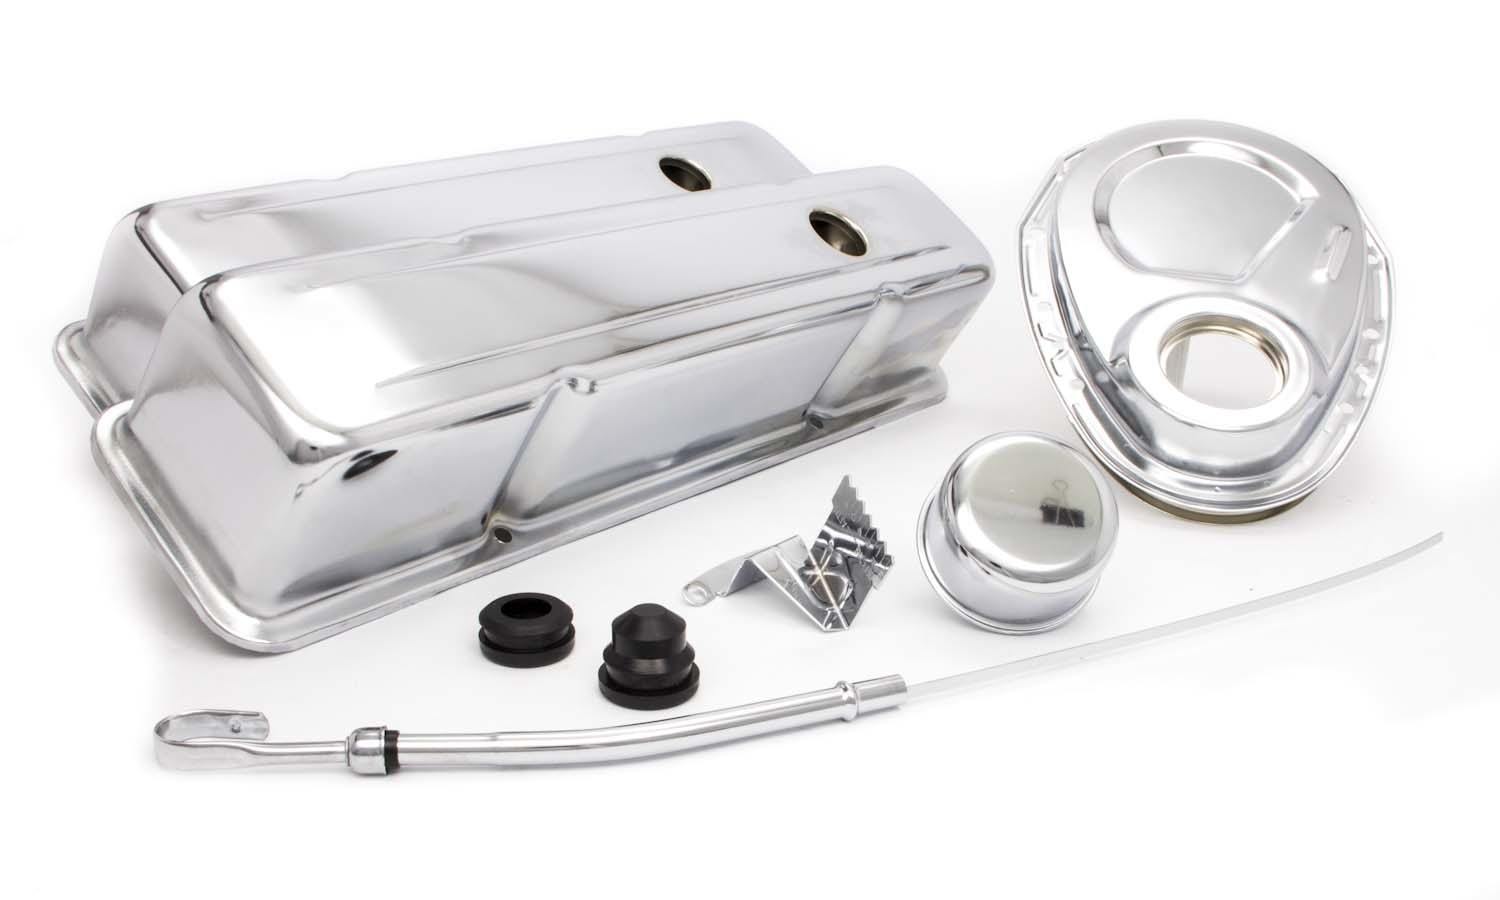 Racing Power Company R3024 Engine Dress Up Kit, Tall Valve Covers / Breather / Dipstick / Grommets / Timing Cover / Timing Tab, Steel, Chrome, Small Block Chevy, Kit